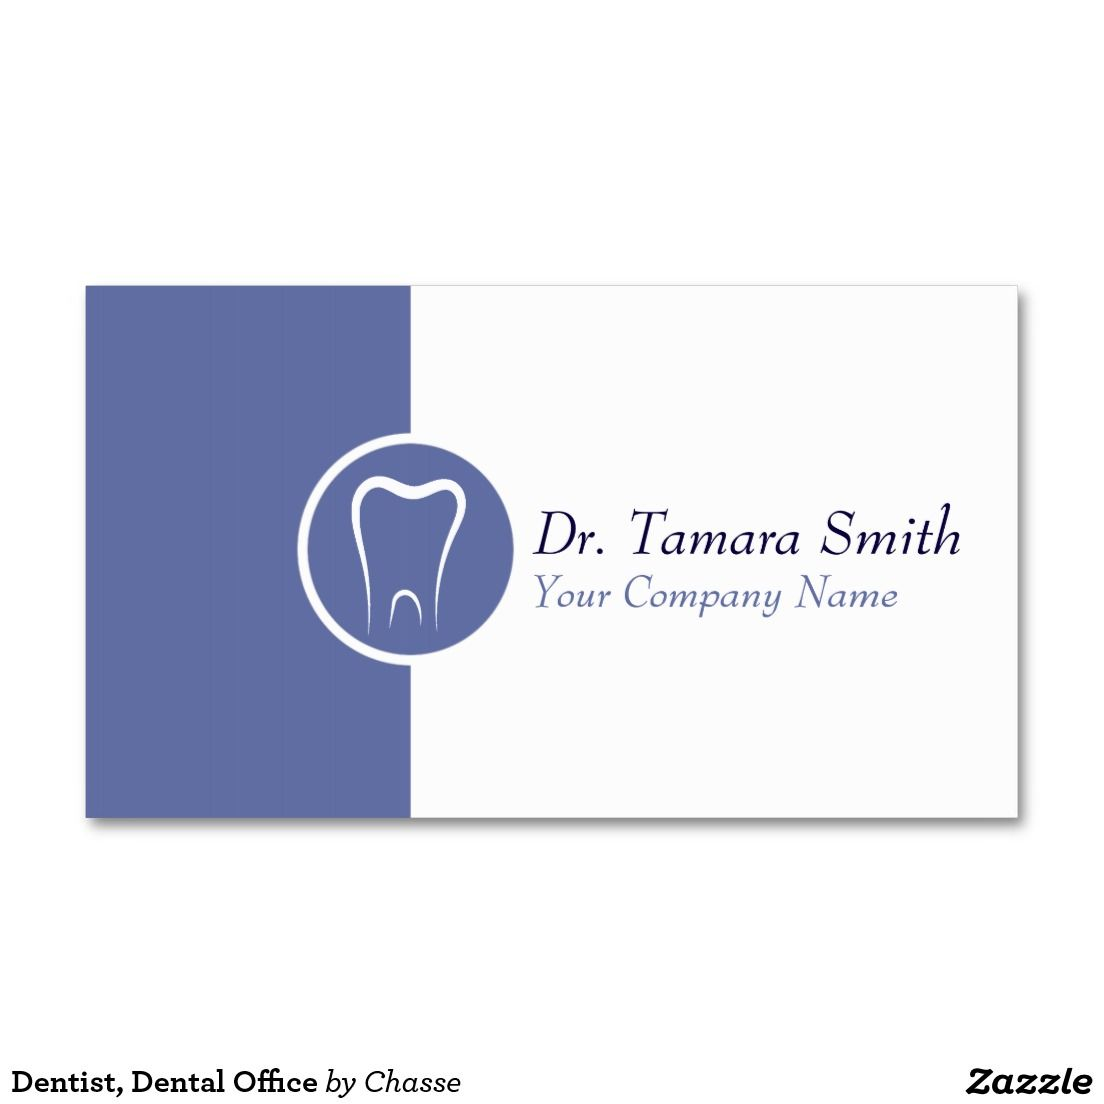 Dentist dental office business card visitin card pinterest dentist dental office double sided standard business cards pack of 100 accmission Choice Image